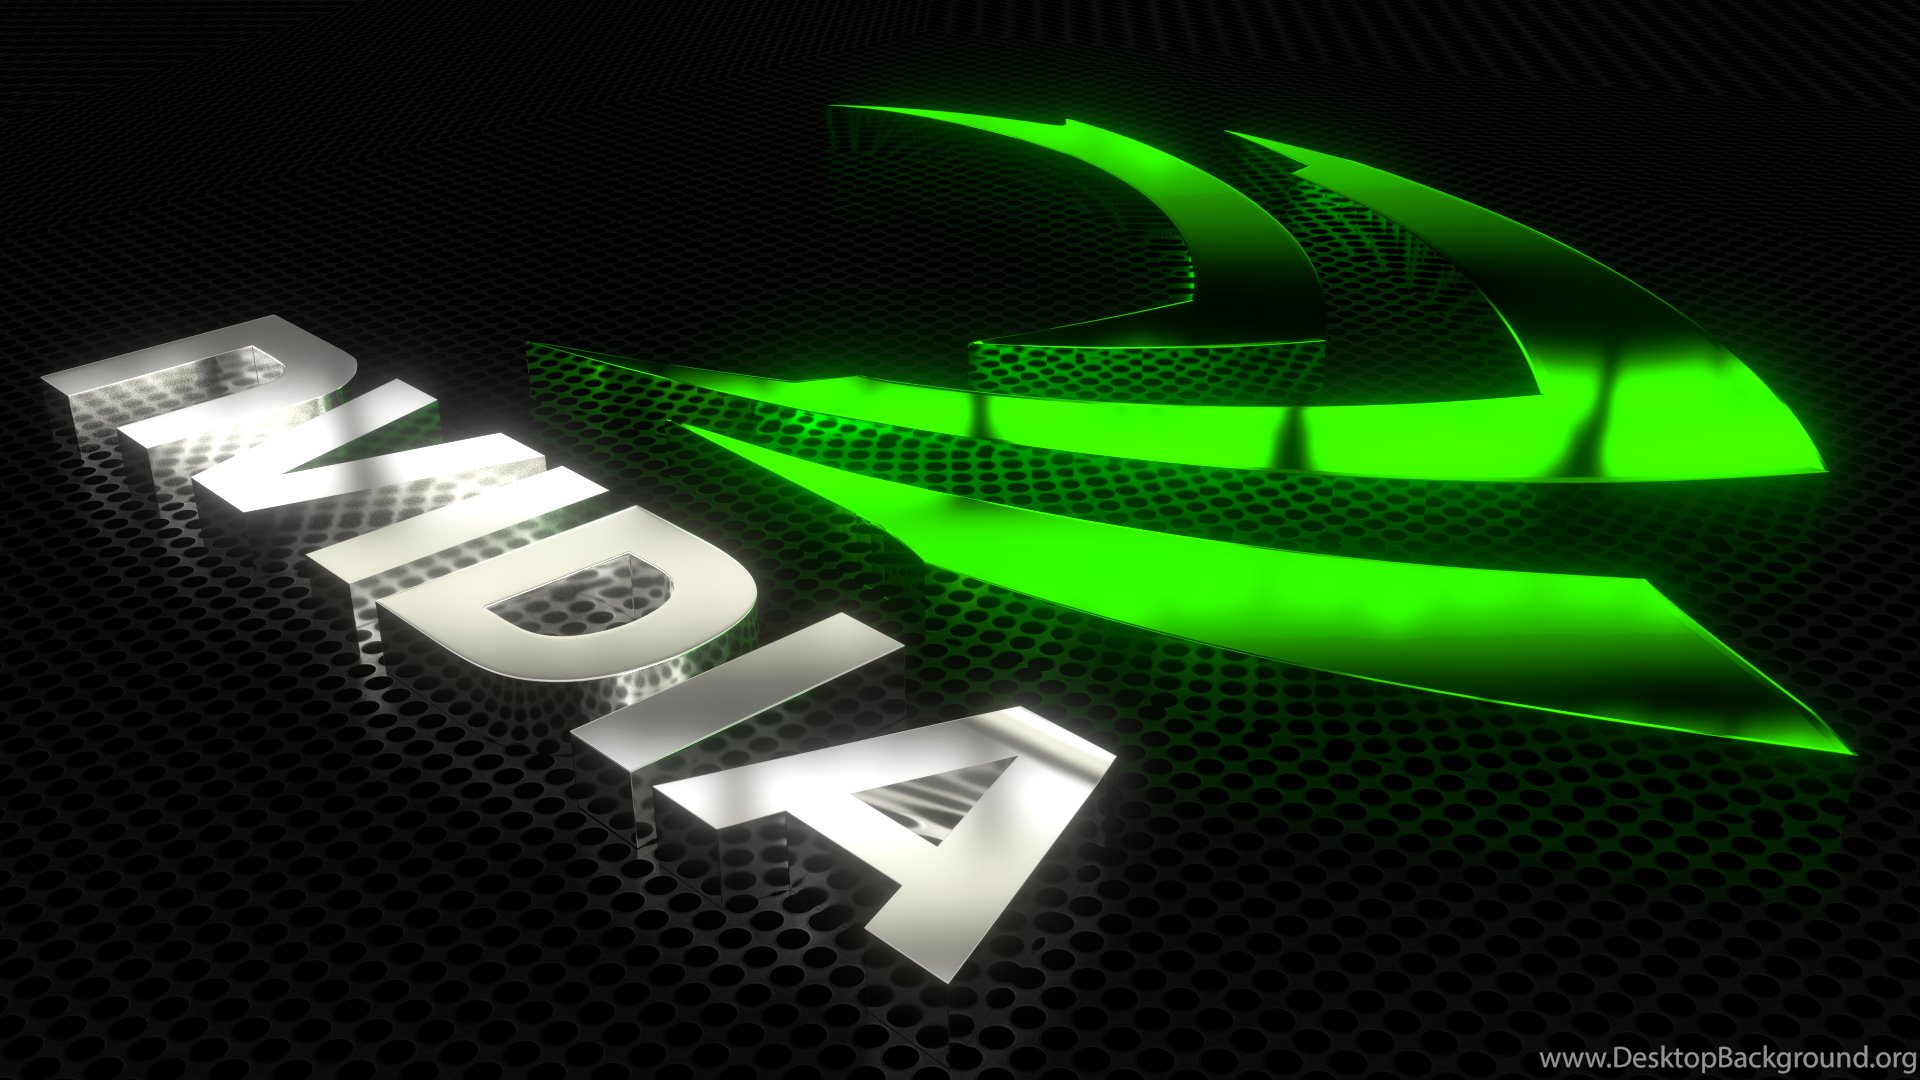 Nvidia wallpapers pictures 665 amazing desktop background - 1920x1080 wallpaper nvidia ...